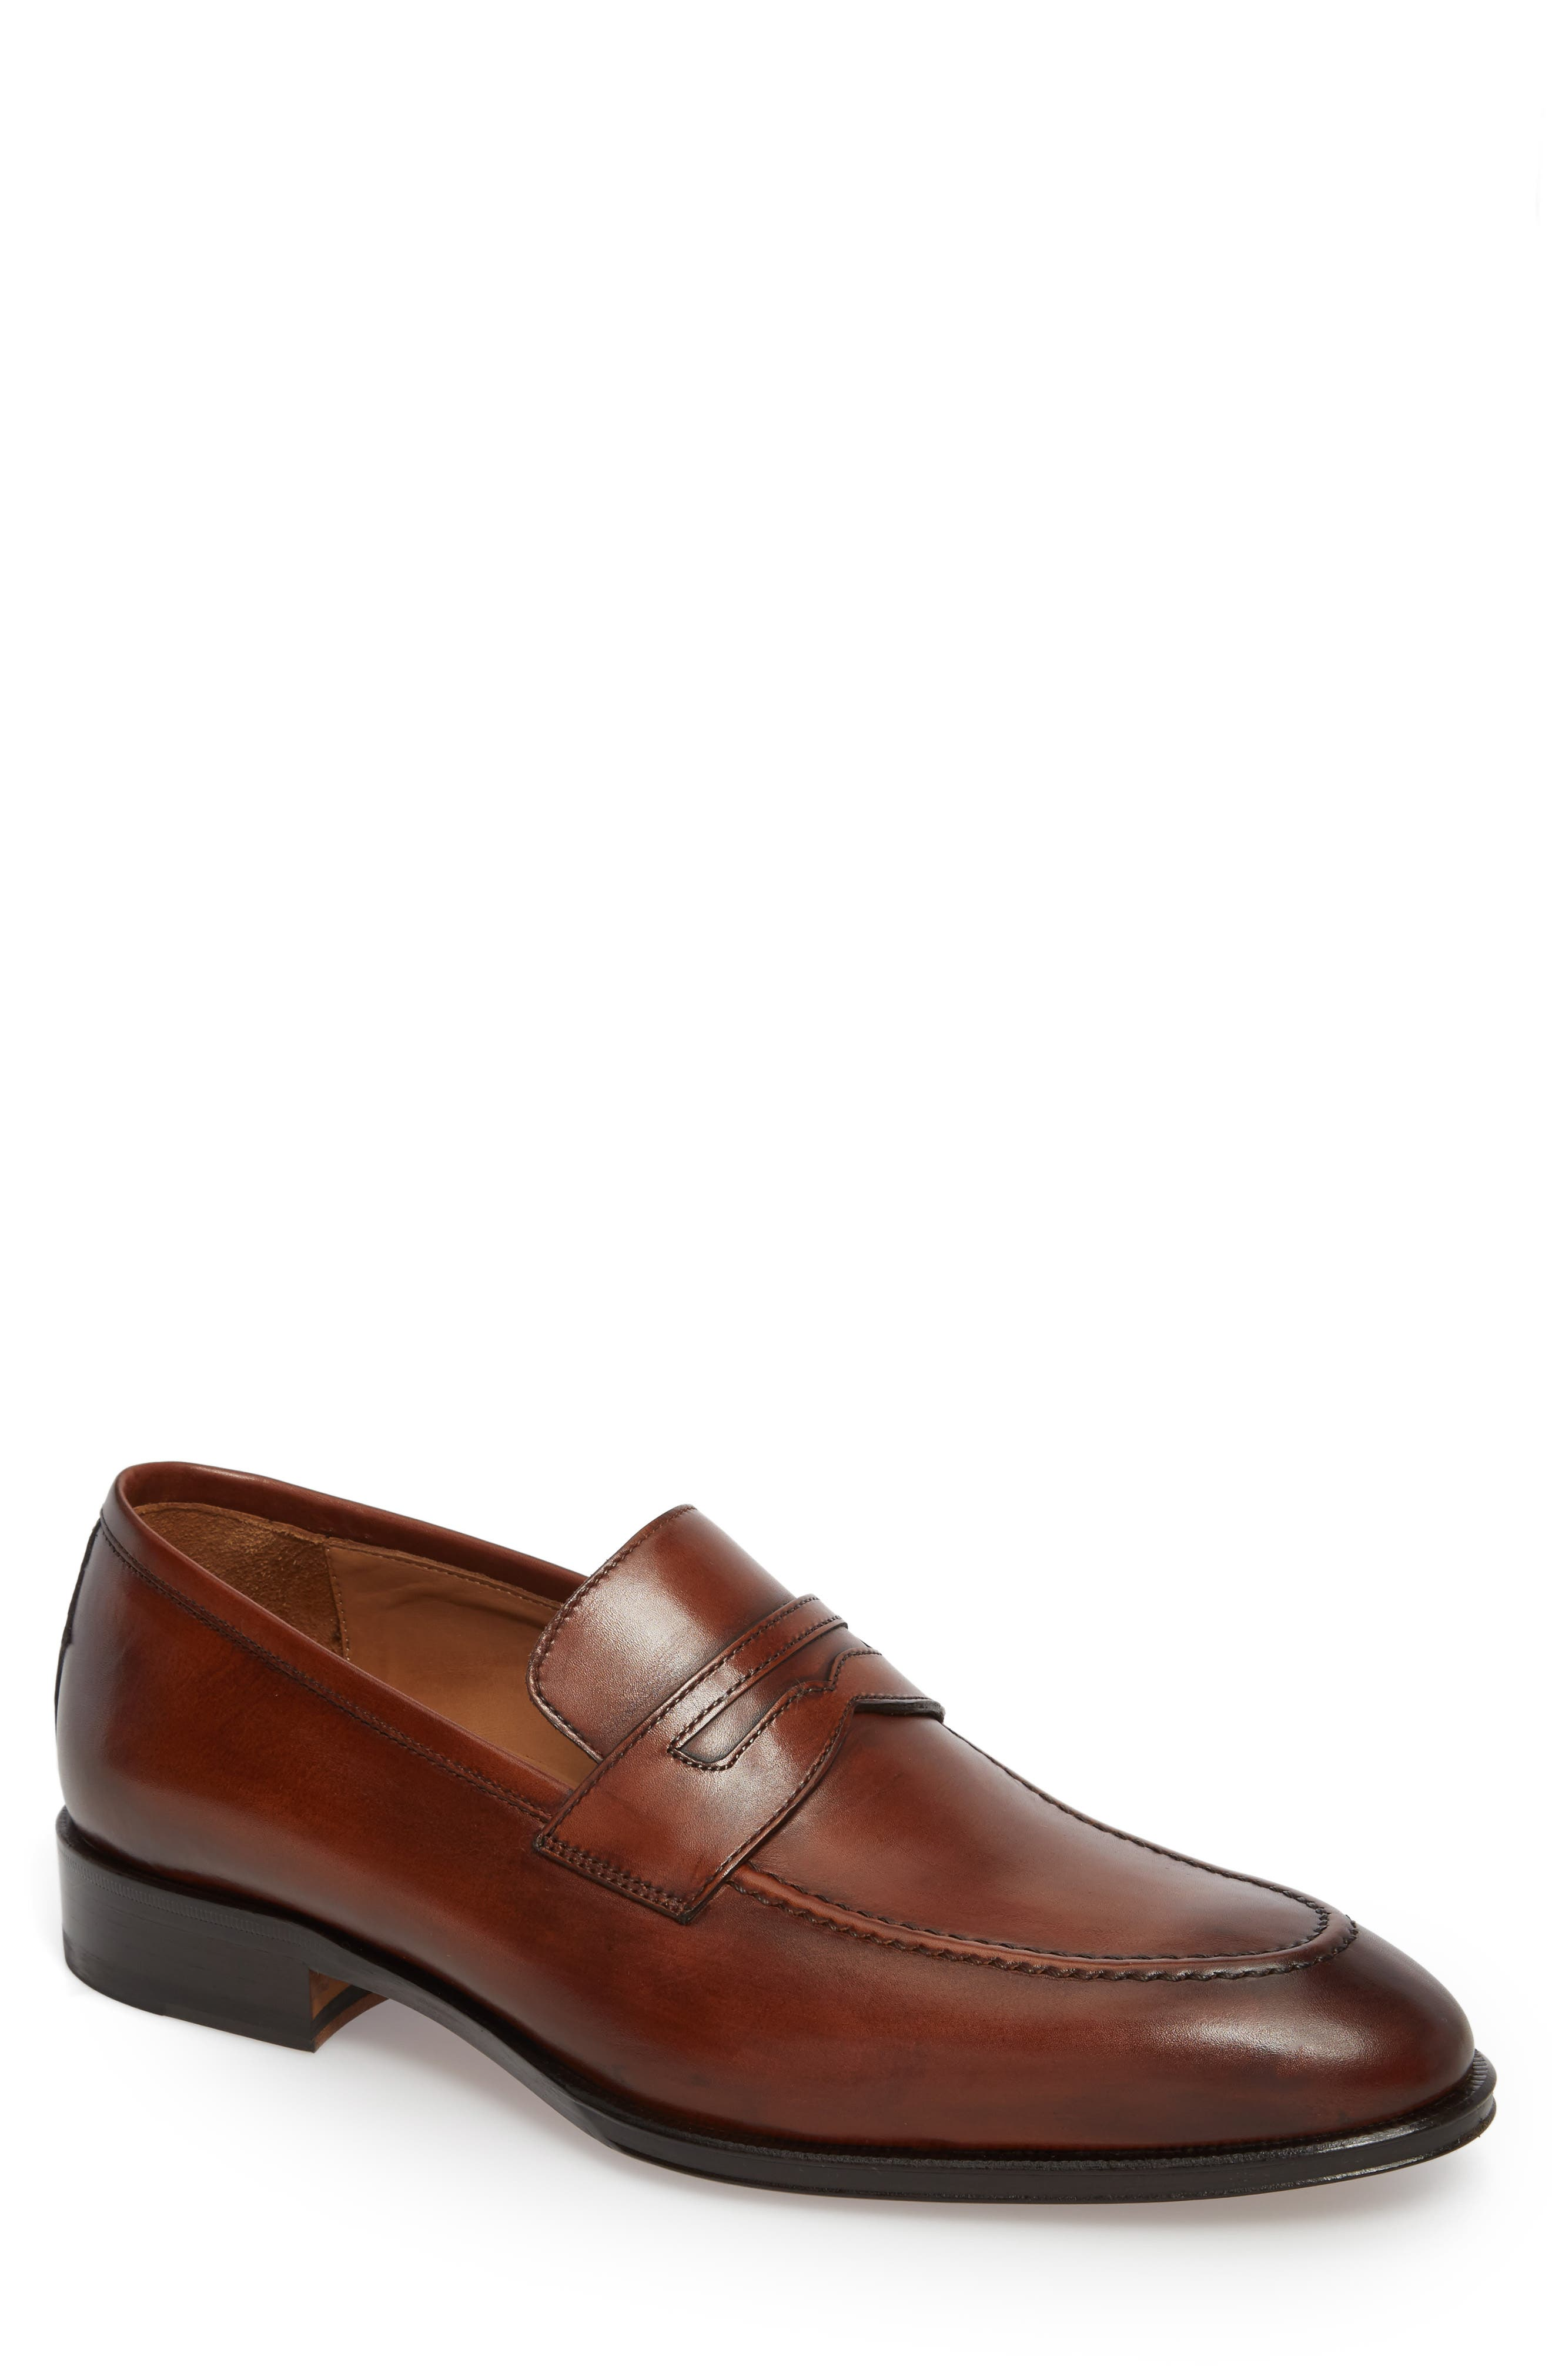 Penny Loafer,                             Main thumbnail 1, color,                             Marble Brown